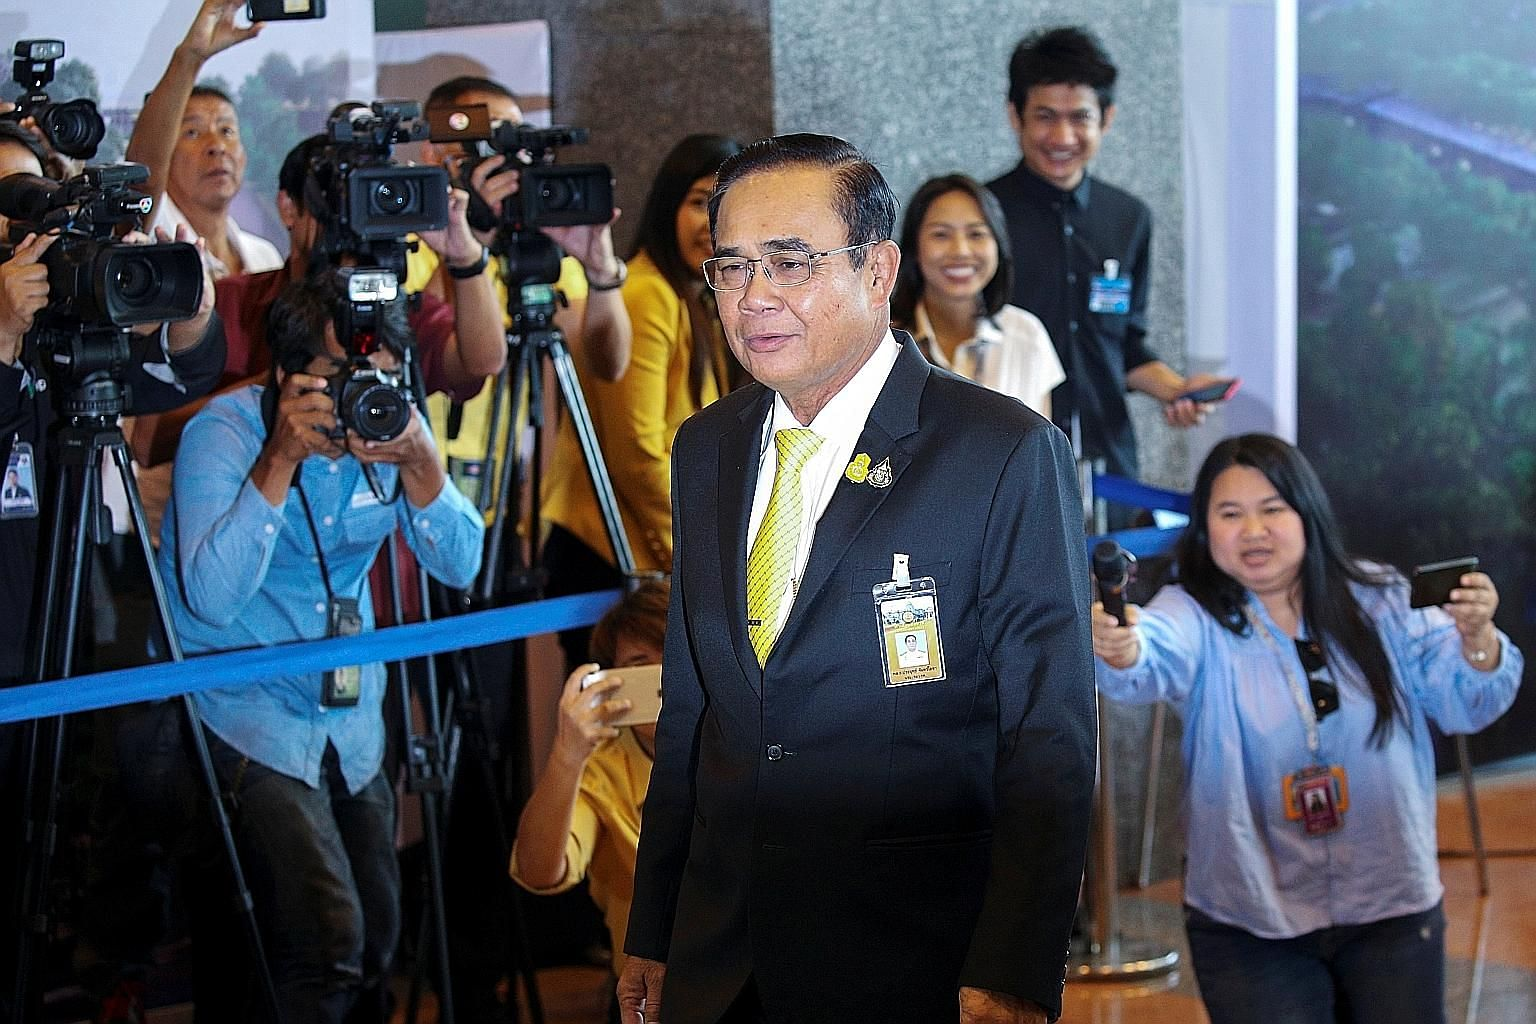 Thailand's Prime Minister Prayut Chan-o-cha in a July photo. Parliament voted to pass the budget Bill last Saturday after an intense three-day debate. The $144 billion Bill is the biggest in Thailand's history.